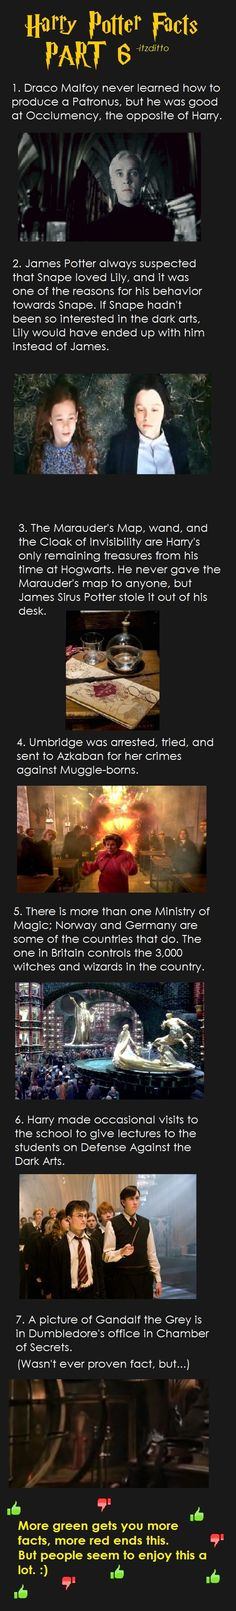 Harry Potter Facts Part 6